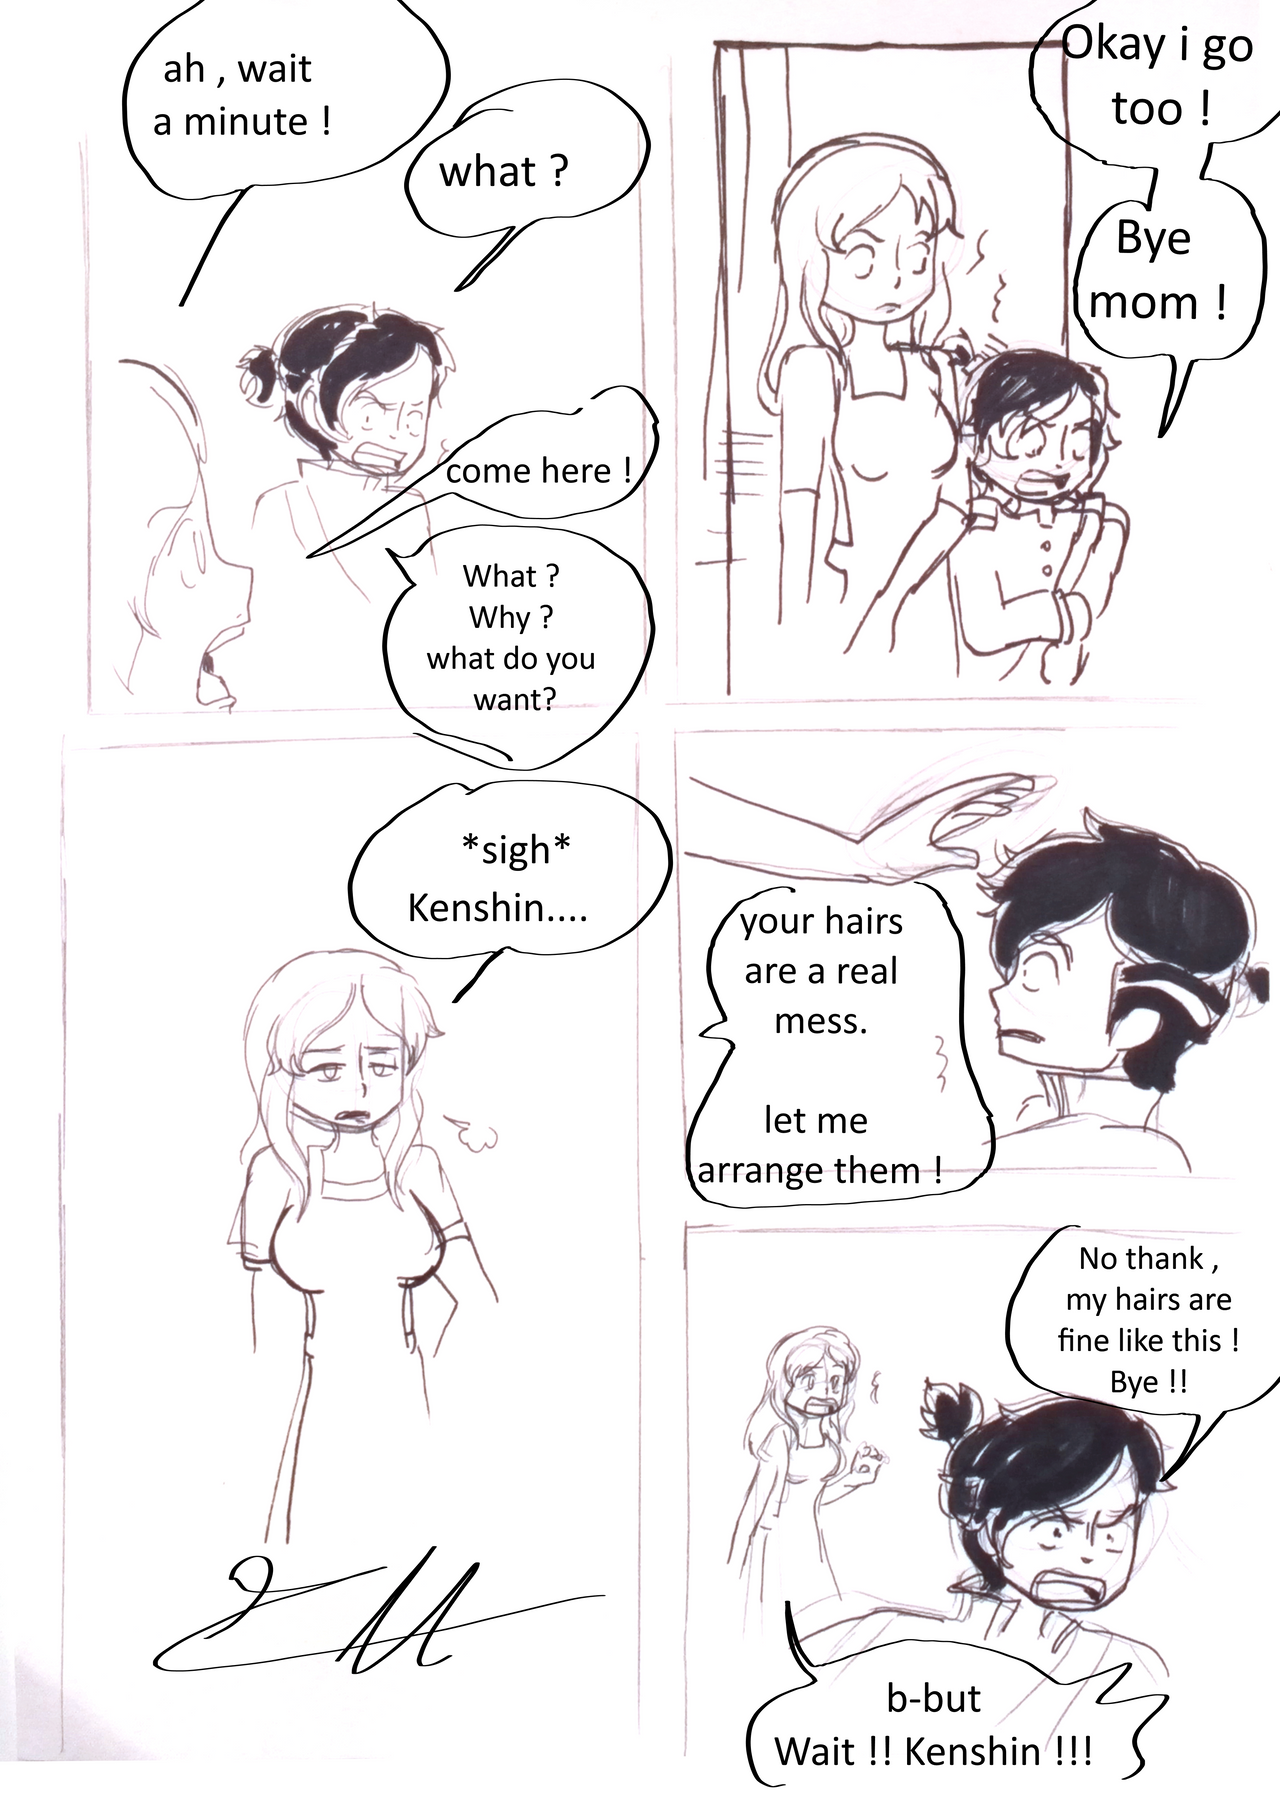 Hungry day Chap 2 p 11